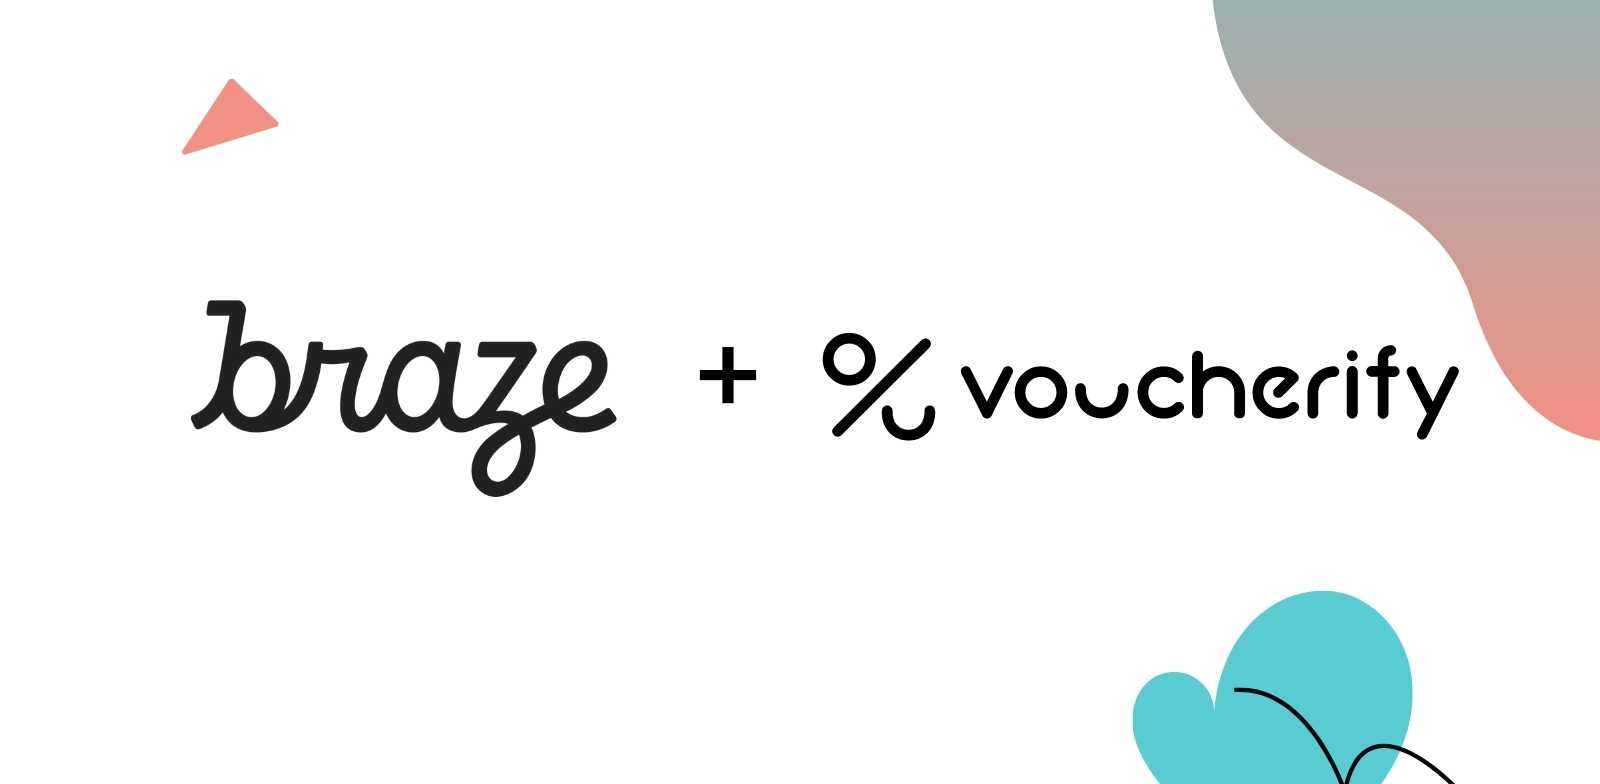 Voucherify & Braze Press Release